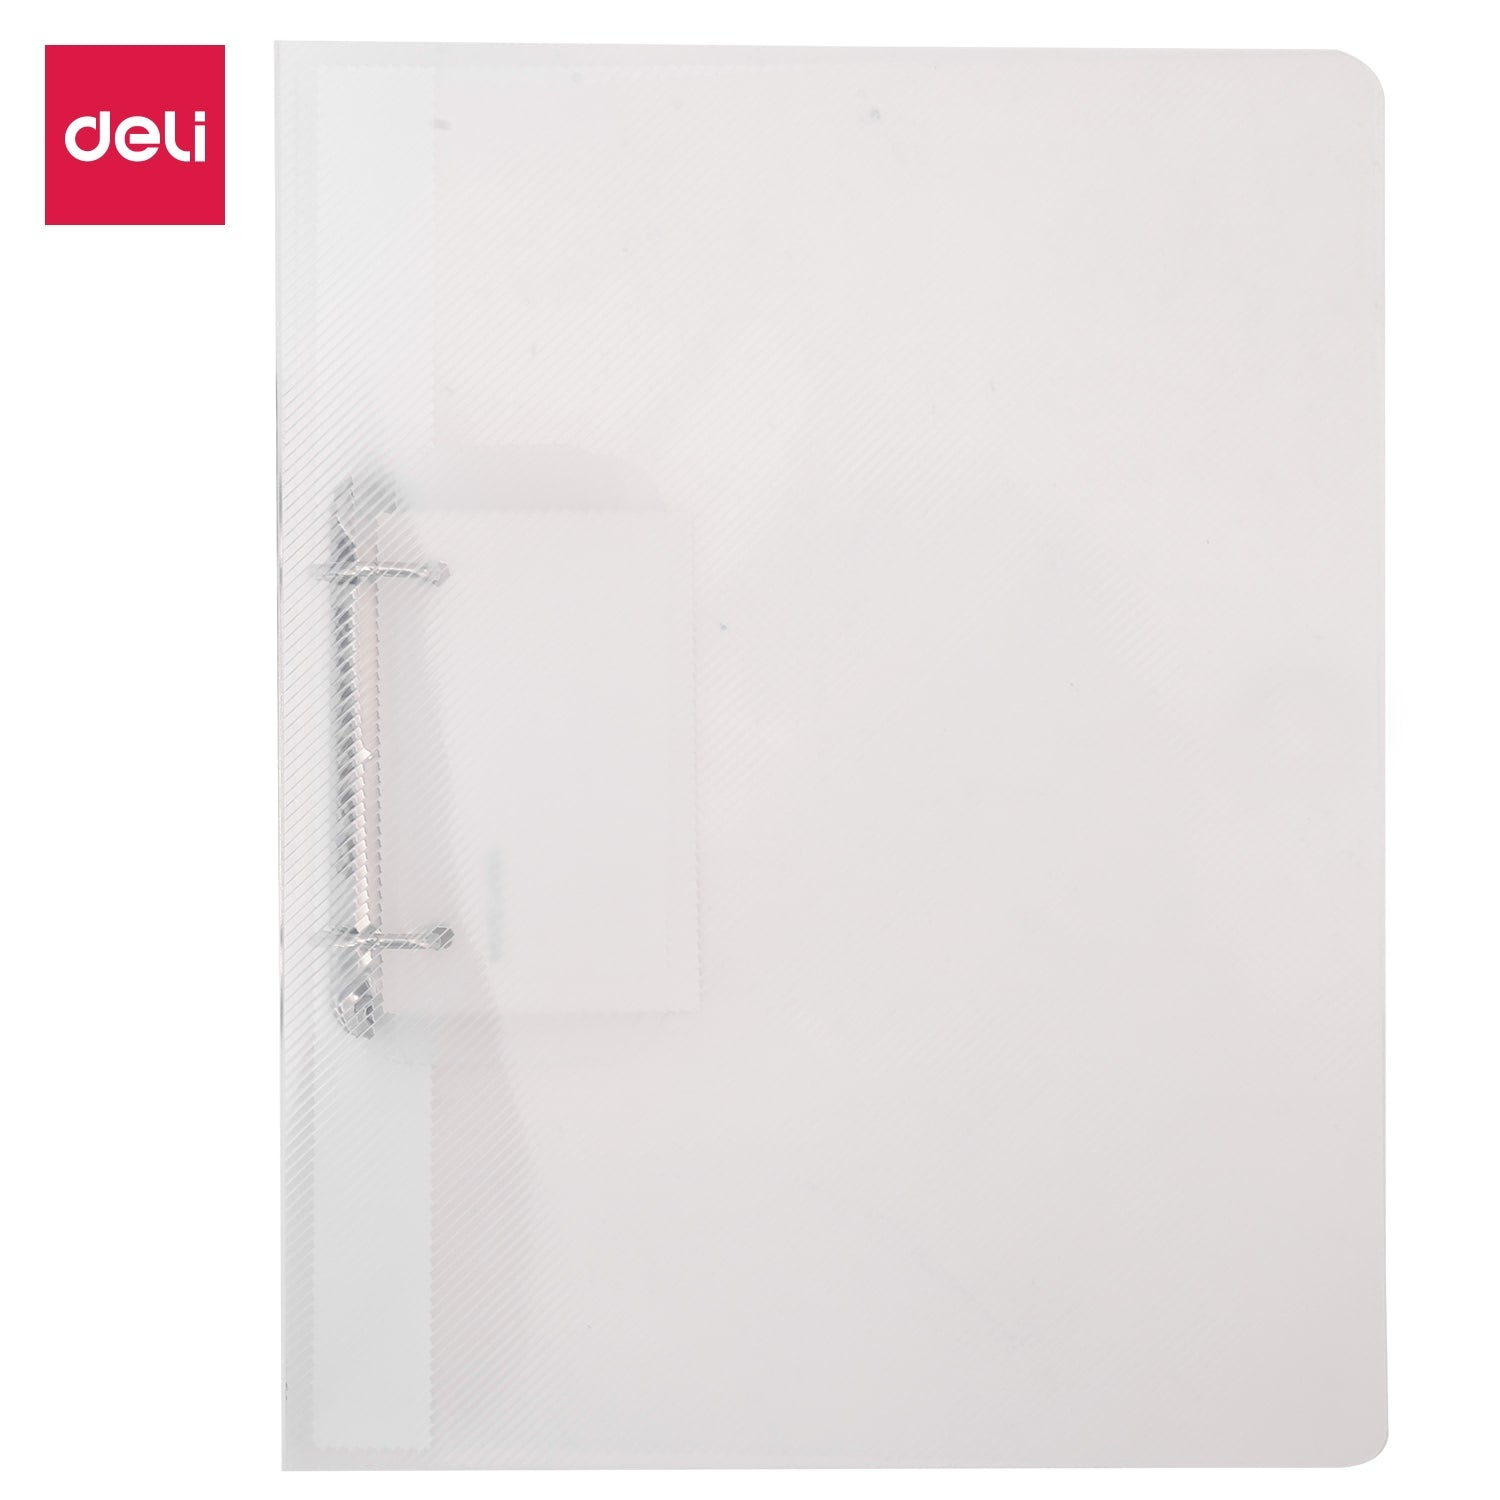 Deli E5381 3/4IN 2 D-Ring Binder A4 Translucent